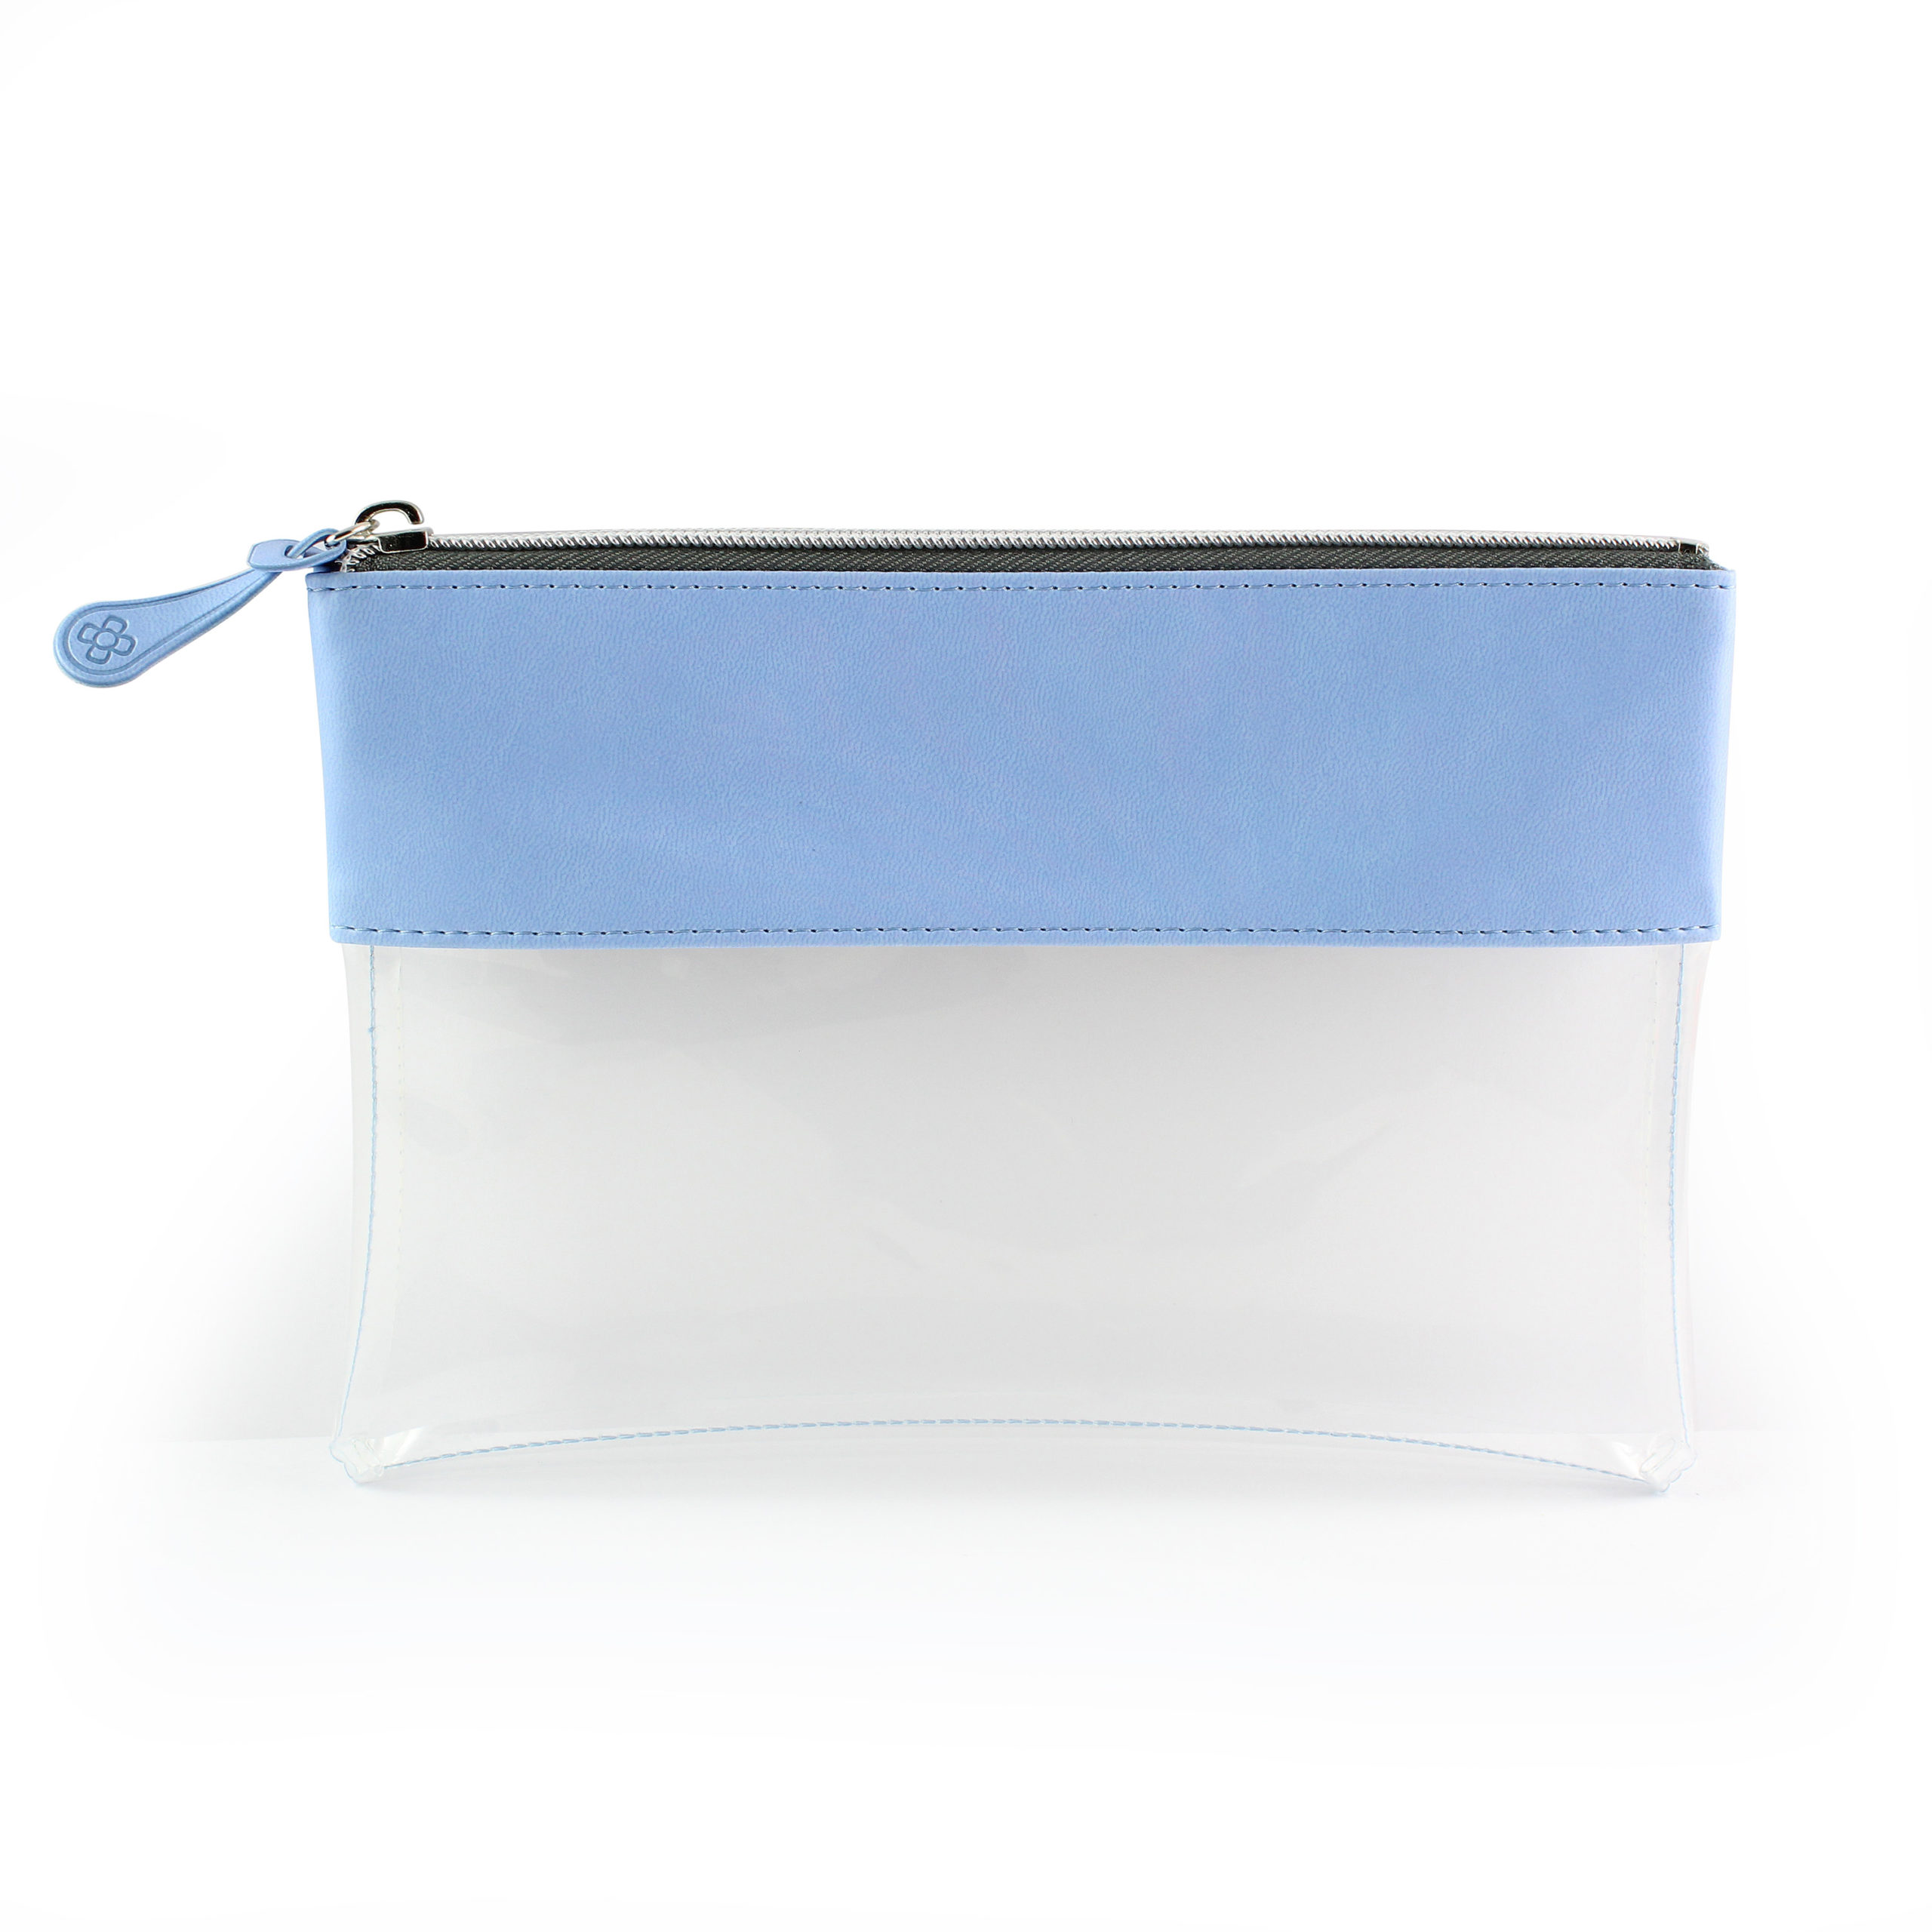 Powder Blue Clear Pouch ideal as a travel pouch or pencil case.